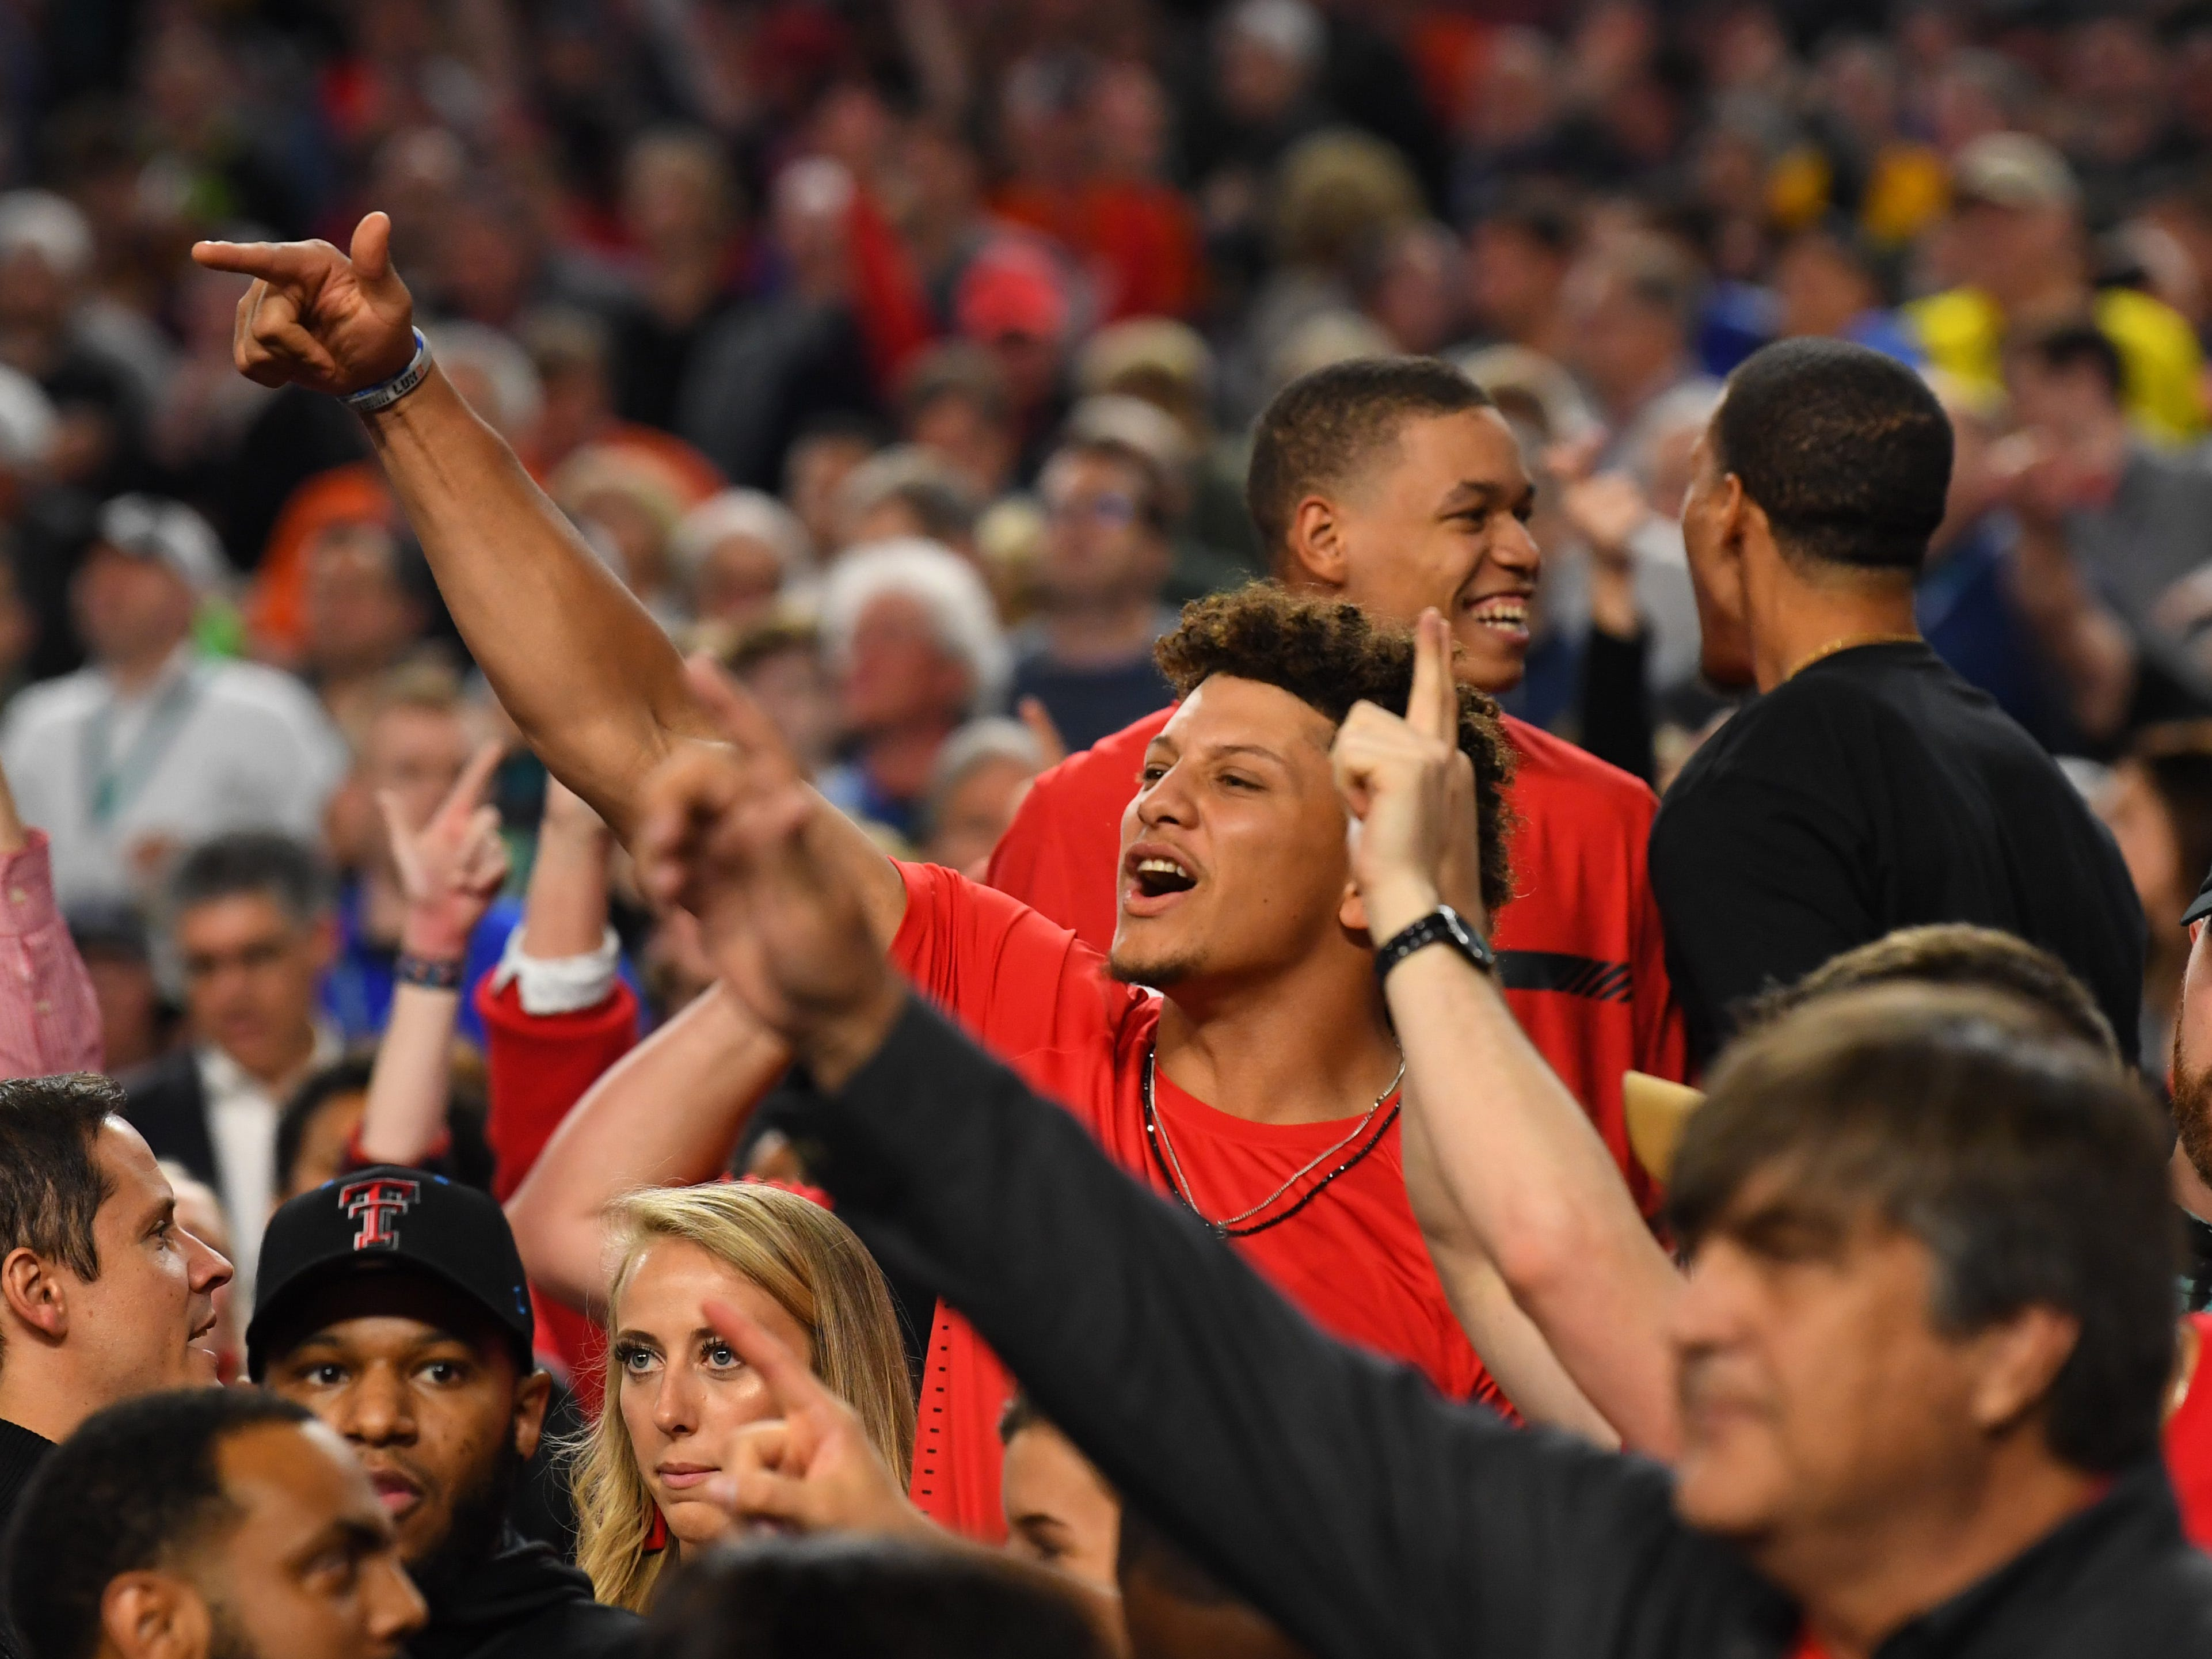 Final Four: Kansas City Chiefs quarterback and former Texas Tech football player Patrick Mahomes cheers in the stands during the Red Raiders' game against the Michigan State Spartans.